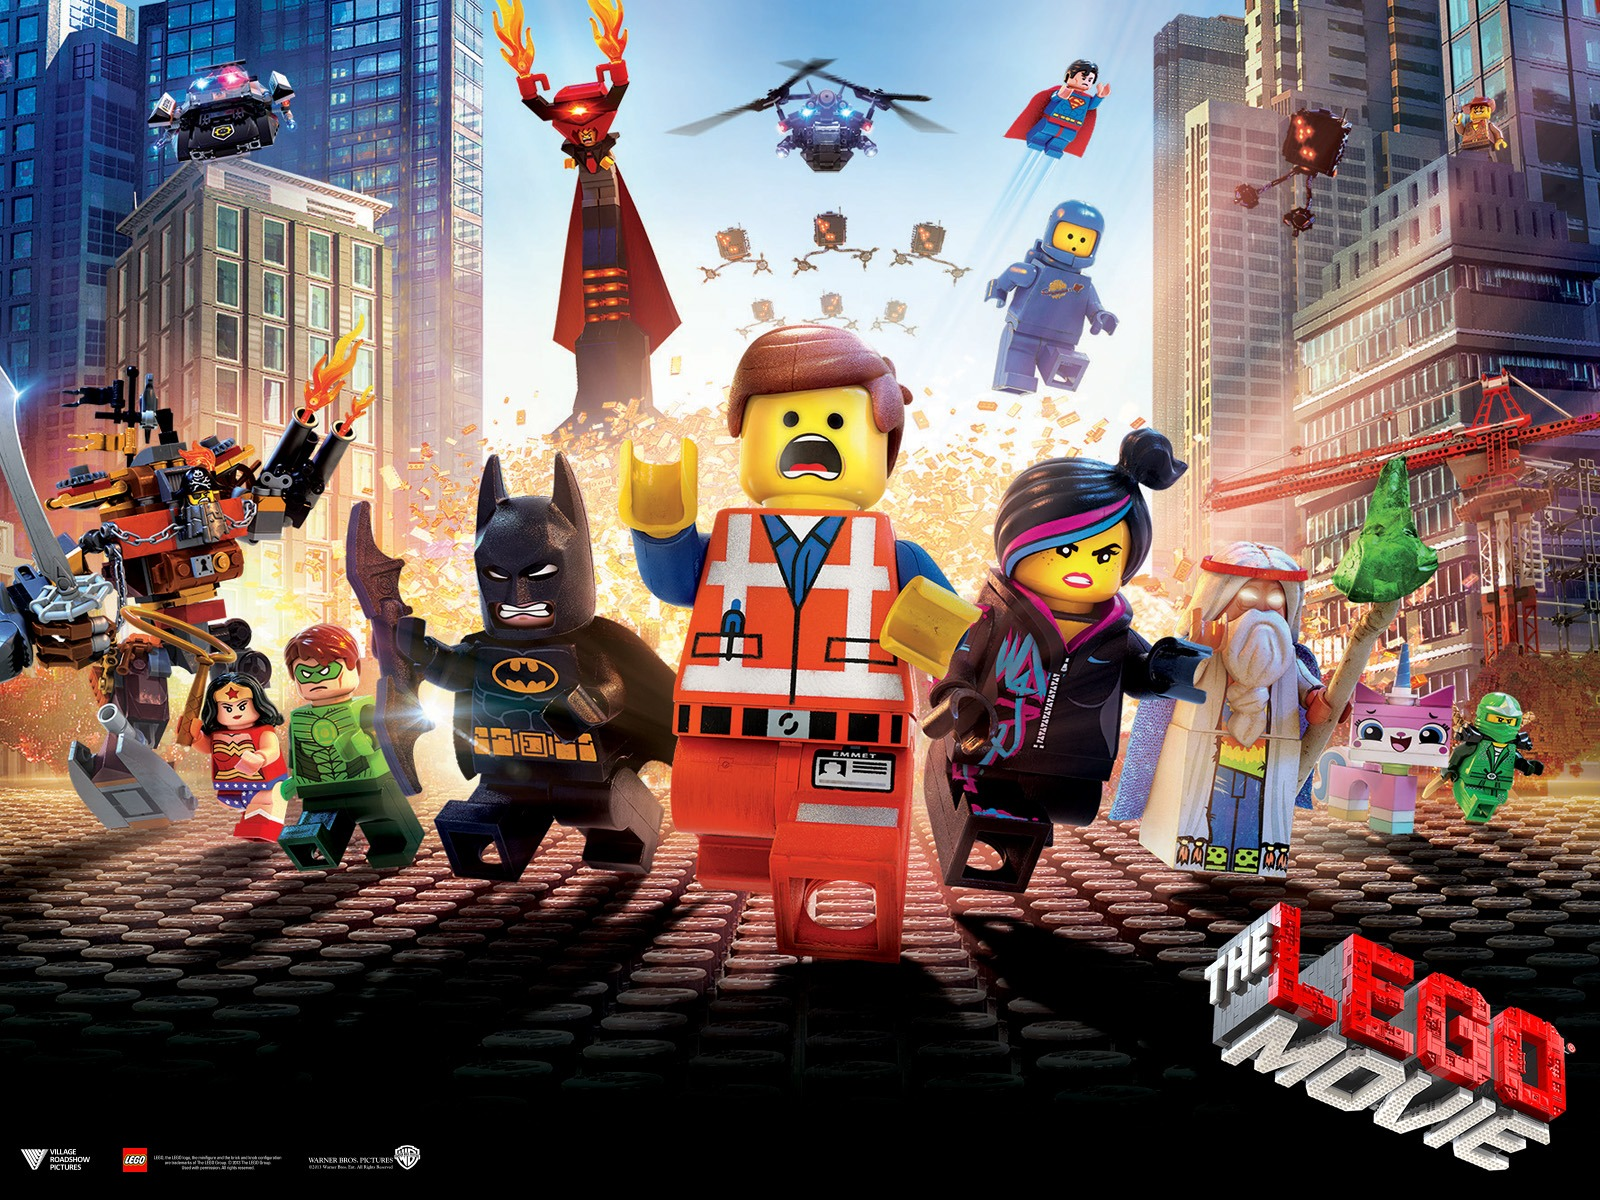 Heck Yeah The Lego Movie